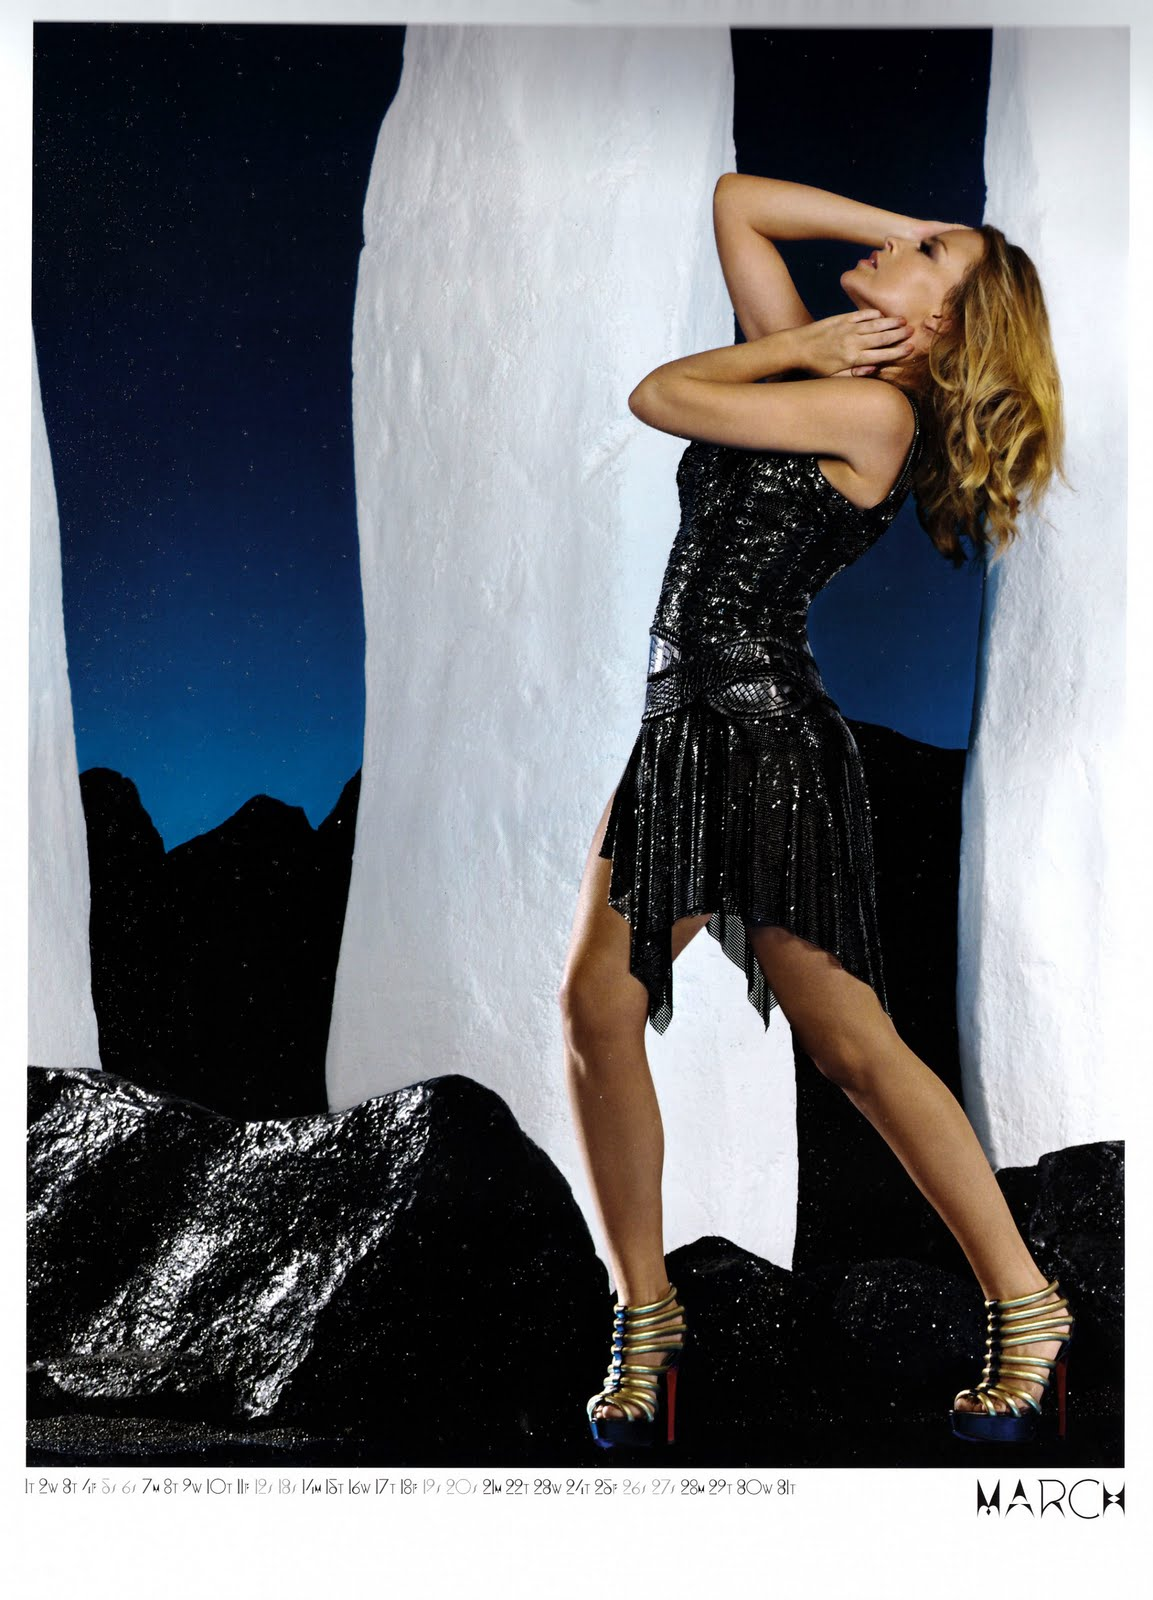 Kylie Minogue Calendrier 2011